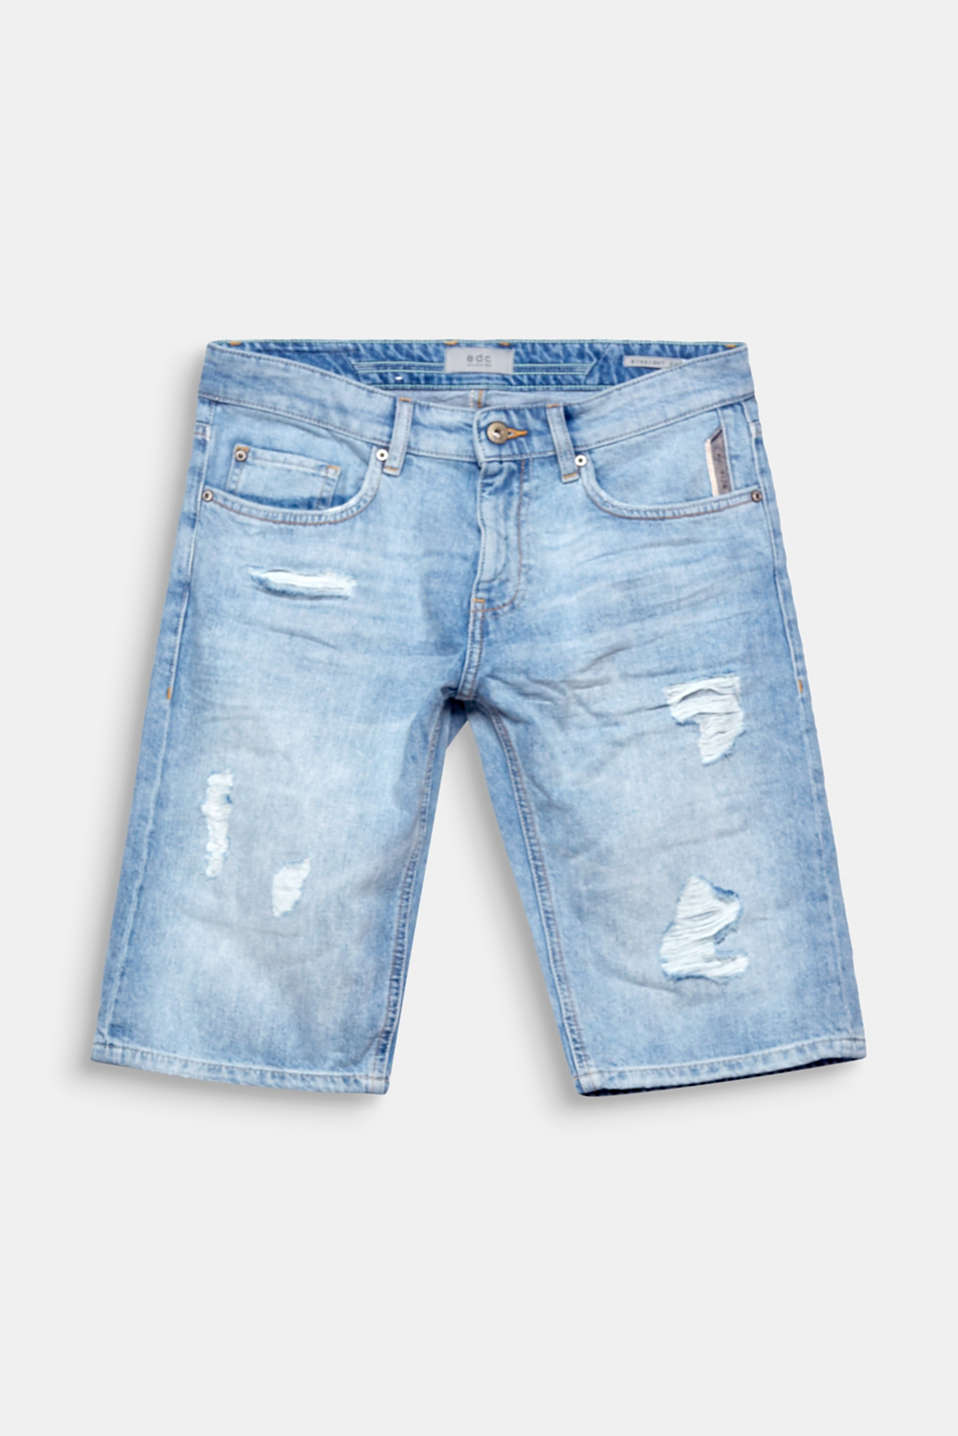 We love distressed denim! These shorts are absolutely essential for an urban summer look.